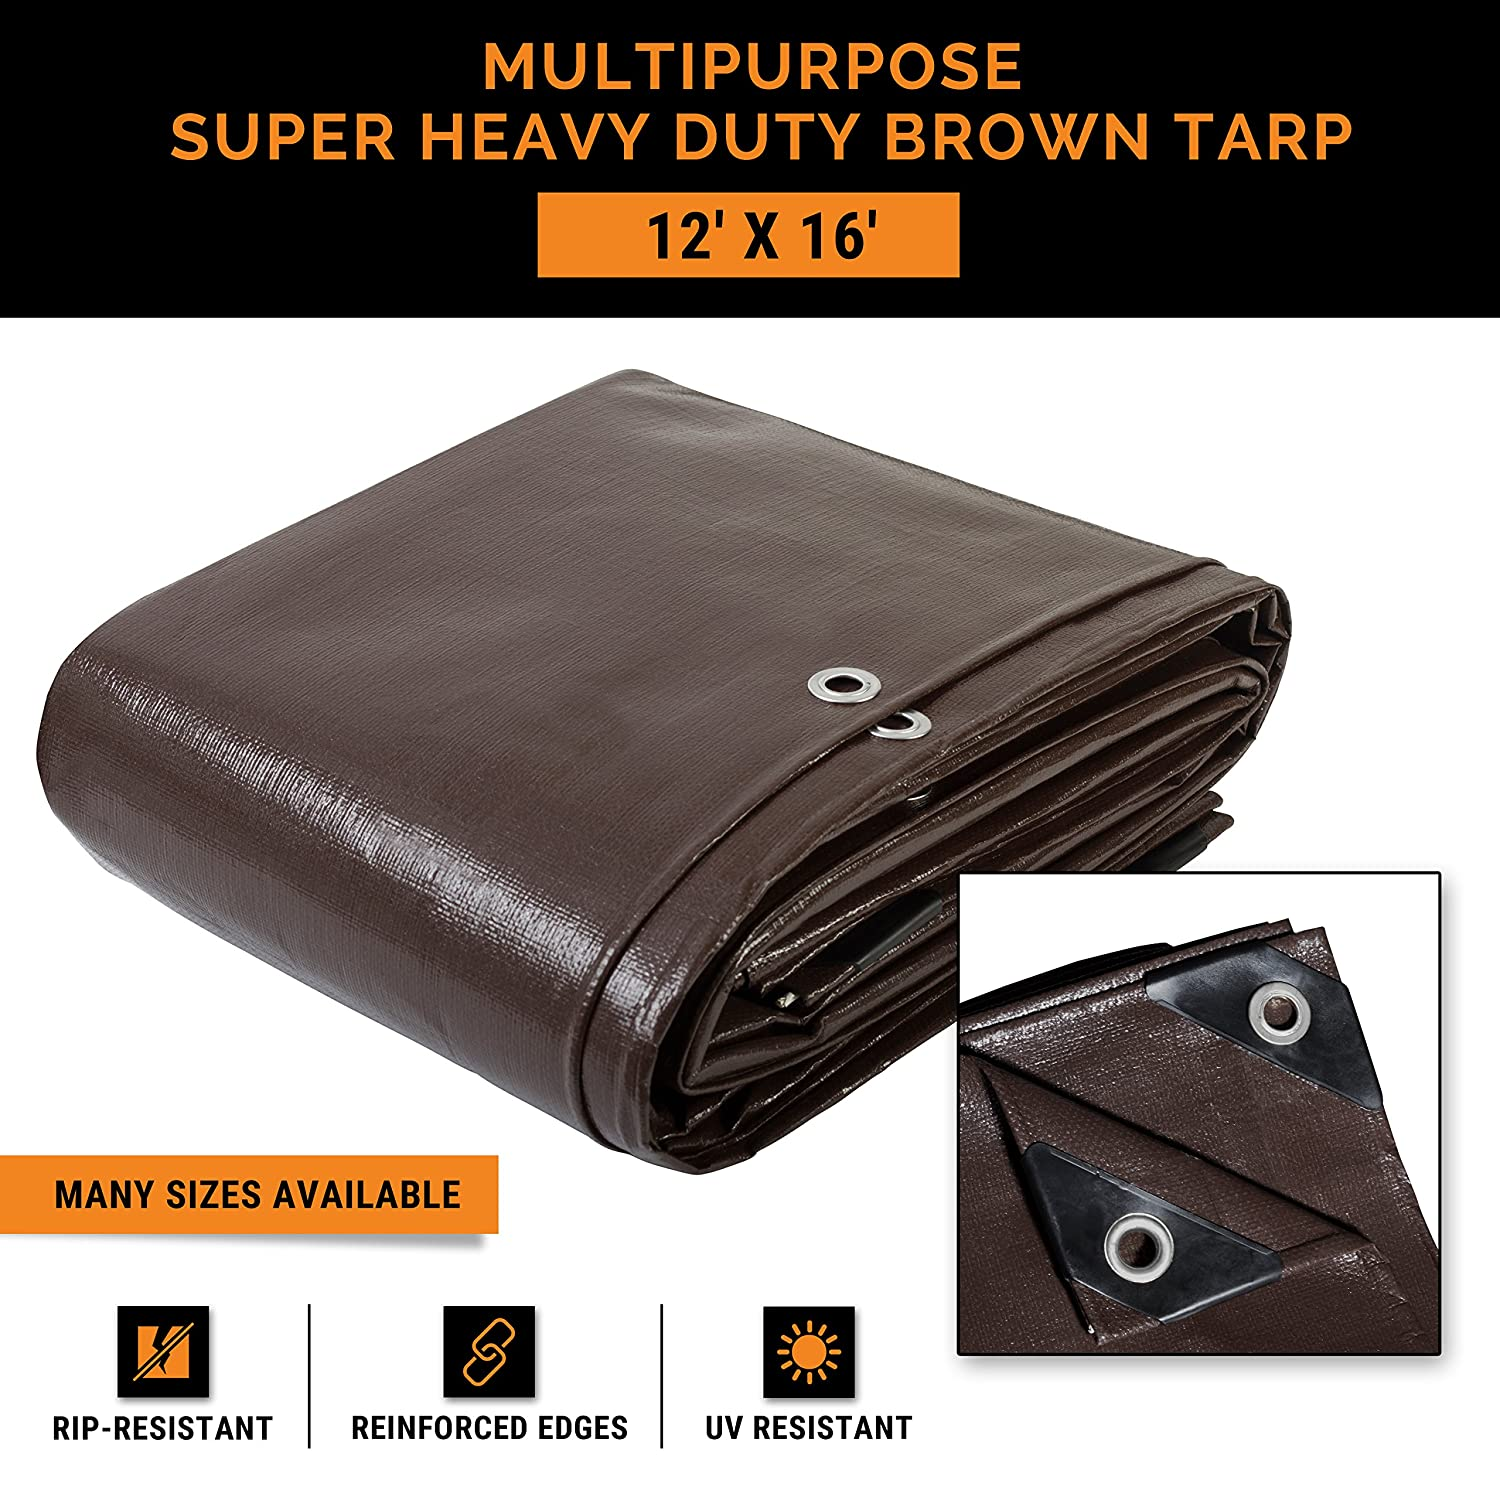 12' x 16' Super Heavy Duty 16 Mil Brown Poly Tarp Cover - Thick Waterproof, UV Resistant, Rot, Rip and Tear Proof Tarpaulin with Grommets and Reinforced Edges - by Xpose Safety